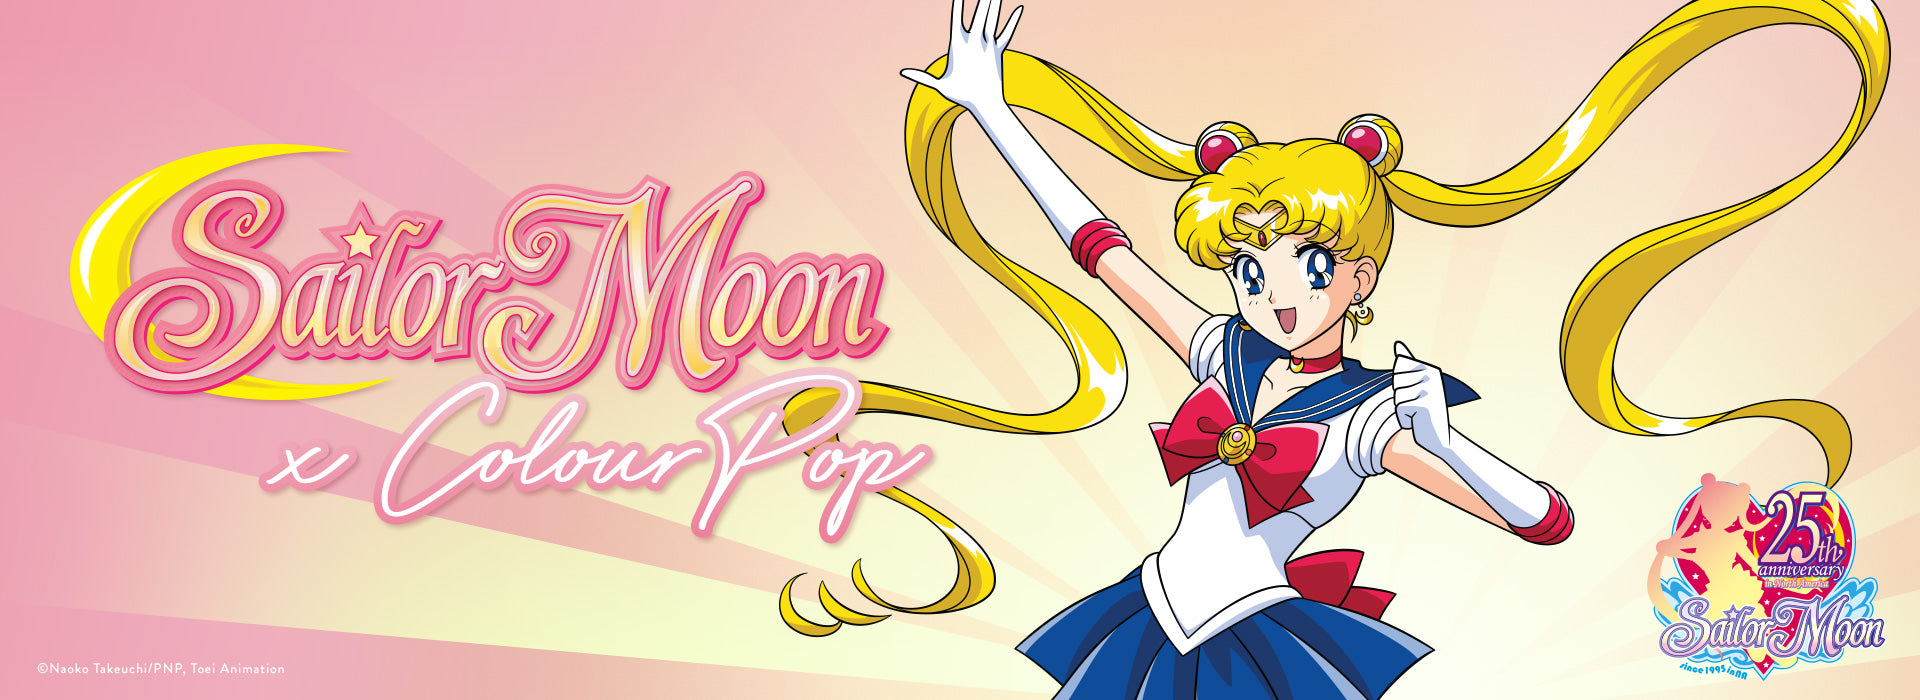 Sailor Moon x Colourpop Collection banner